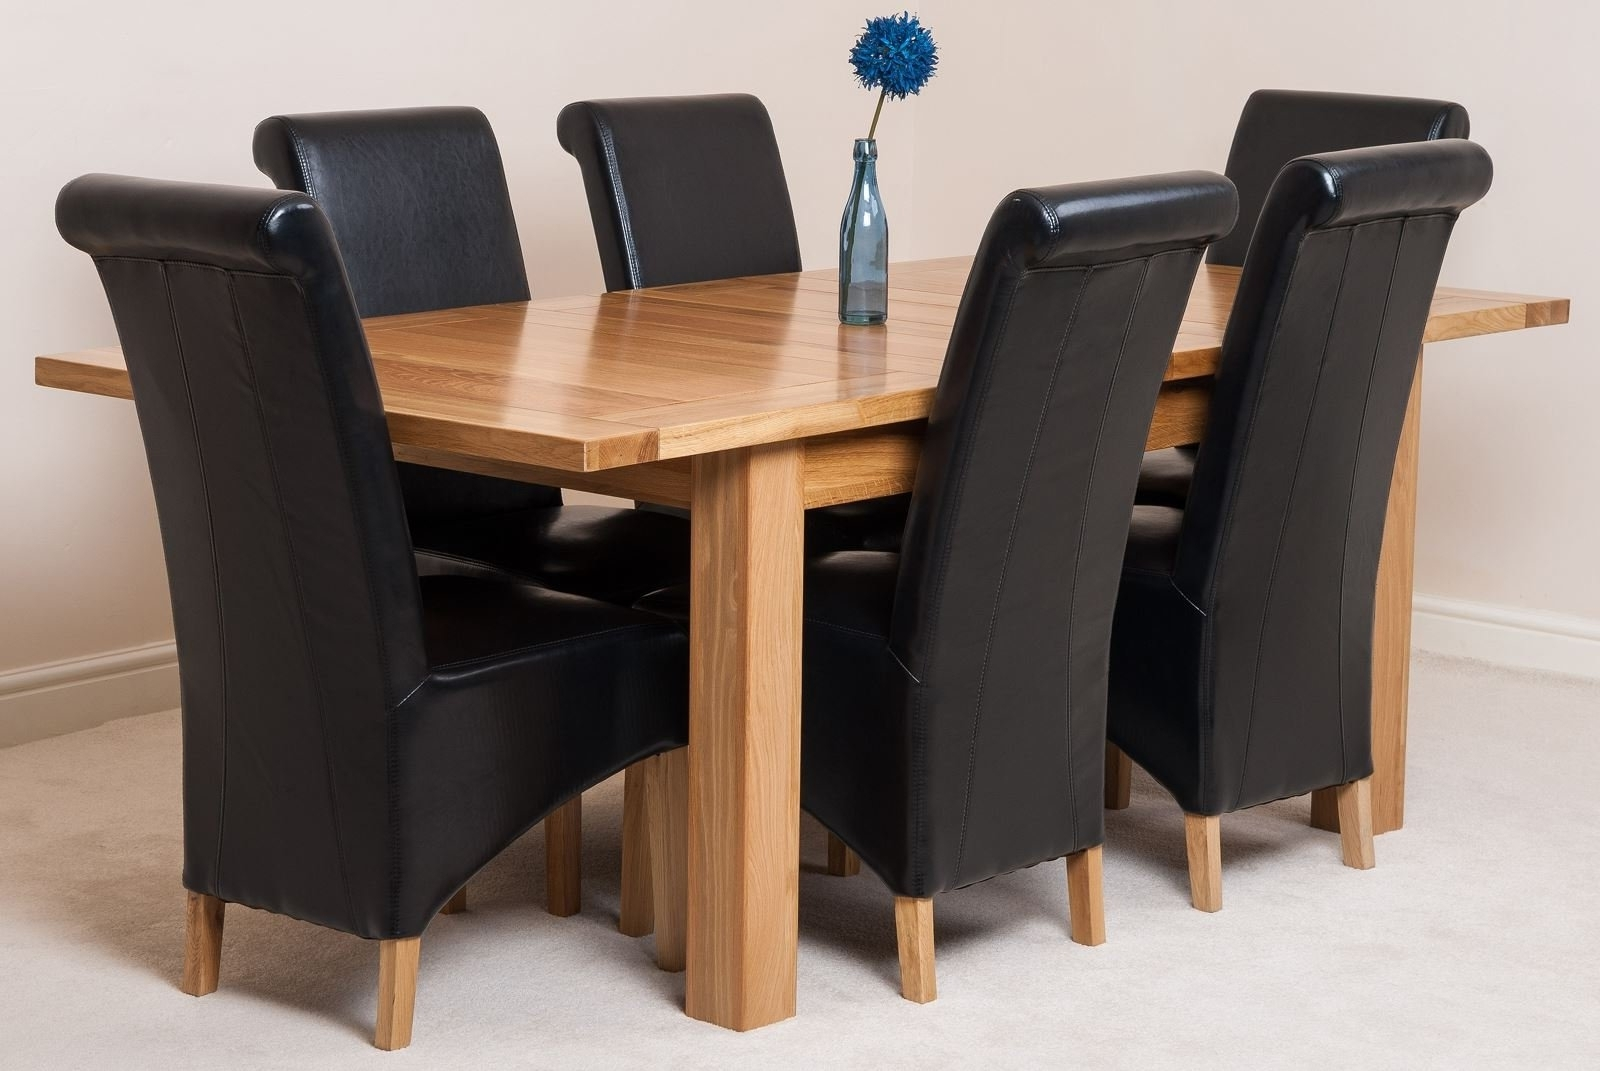 Oak Extending Dining Tables And 4 Chairs With Regard To Trendy Seattle Solid Oak Extending Dining Table With 4 Or 6 Washington (View 14 of 25)